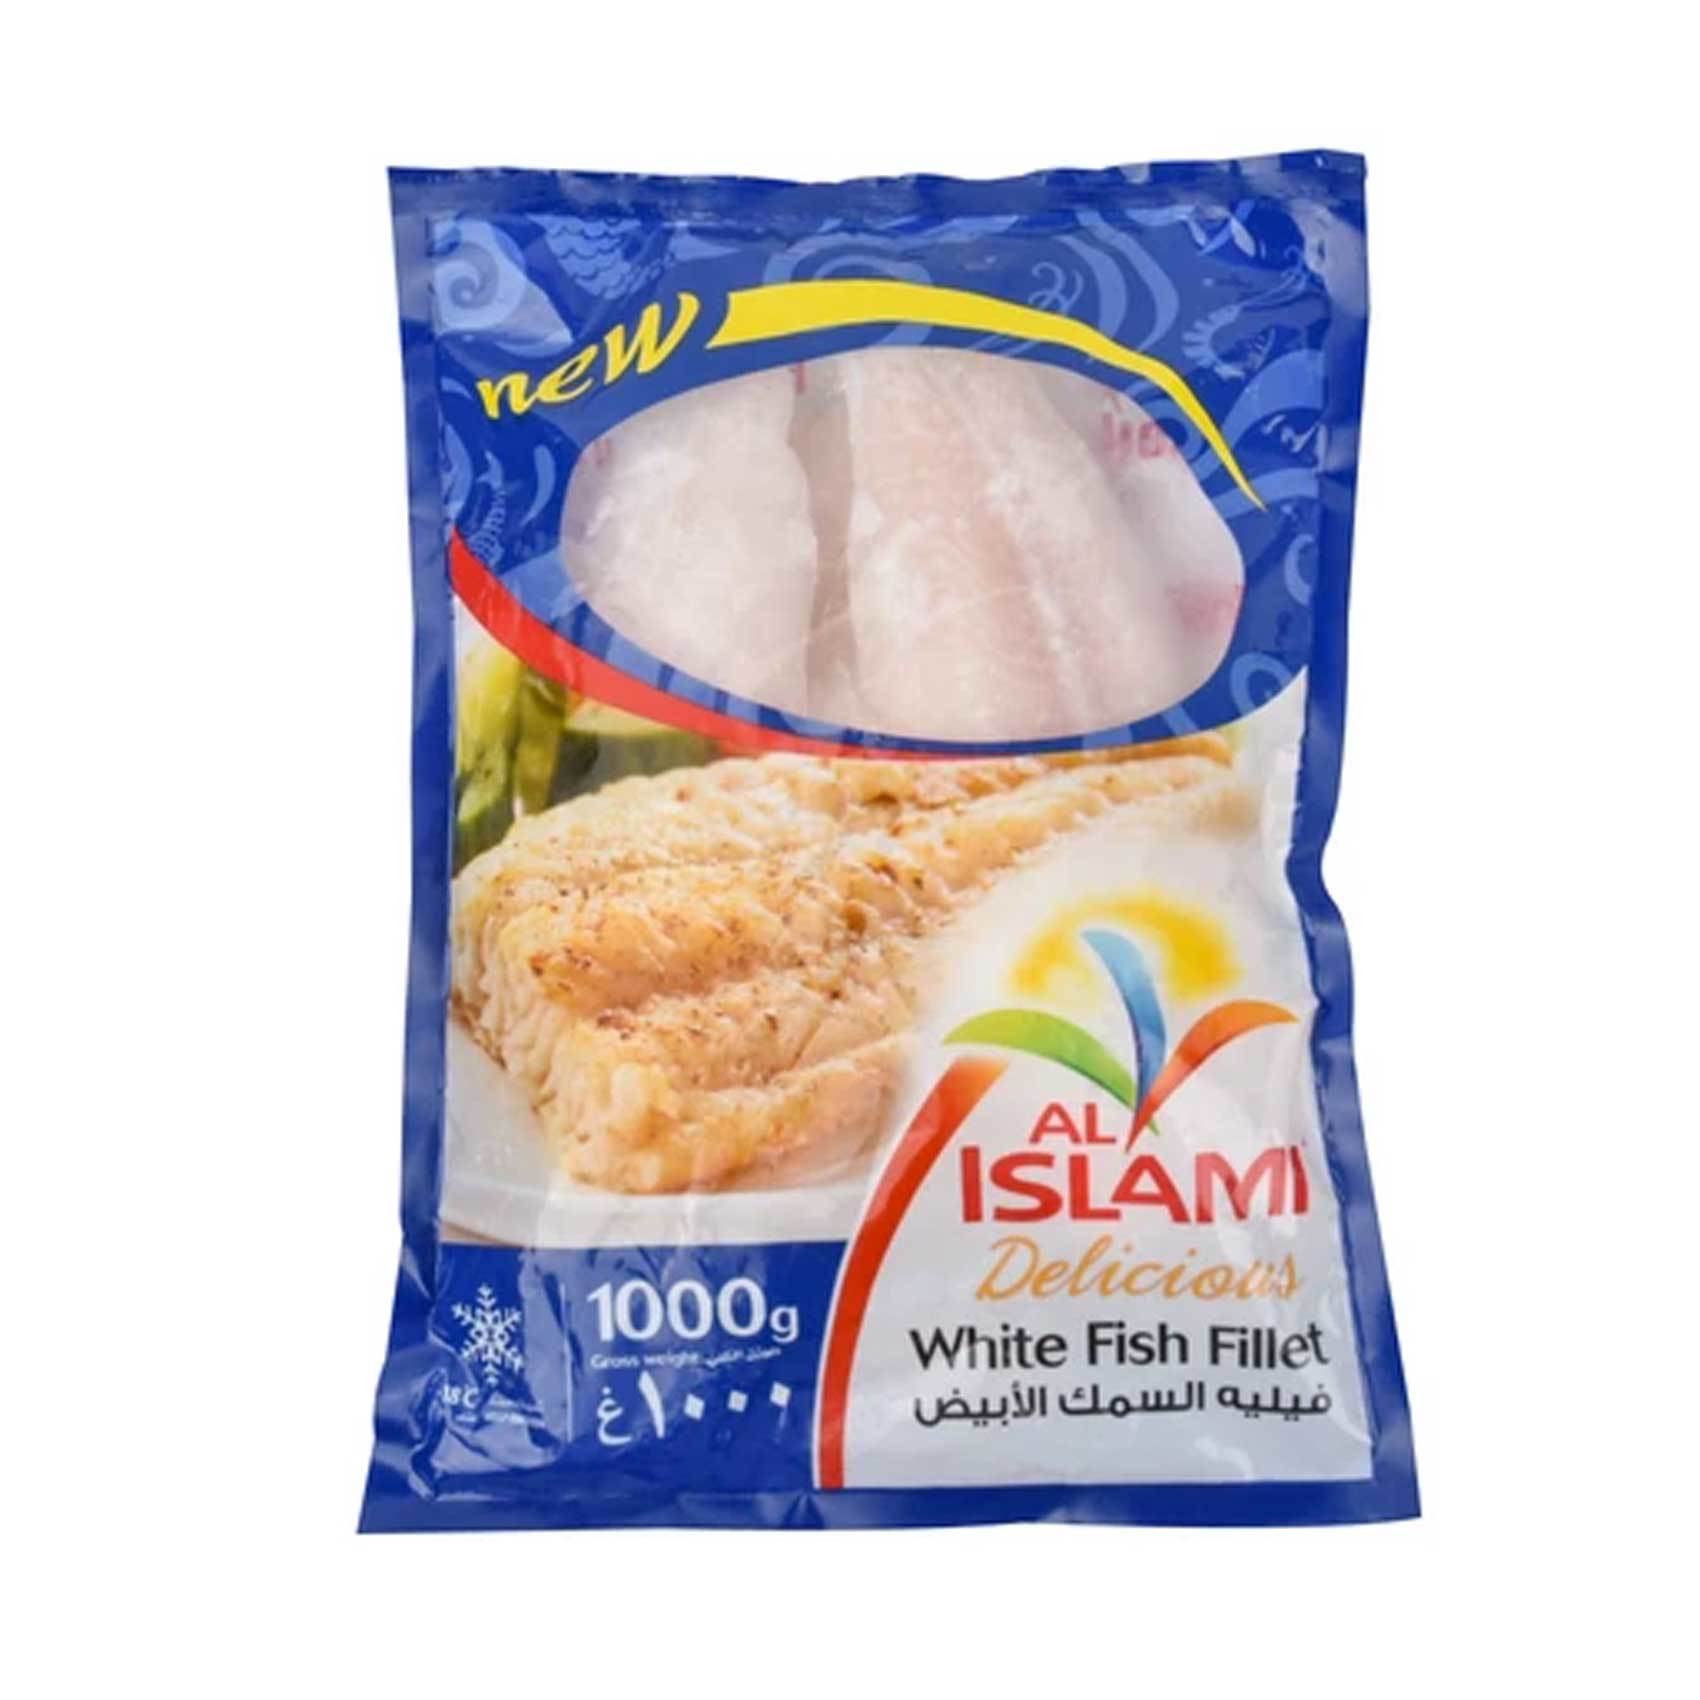 Buy Al Islami White Fish Fillet 1000g Online Shop Frozen Food On Carrefour Uae